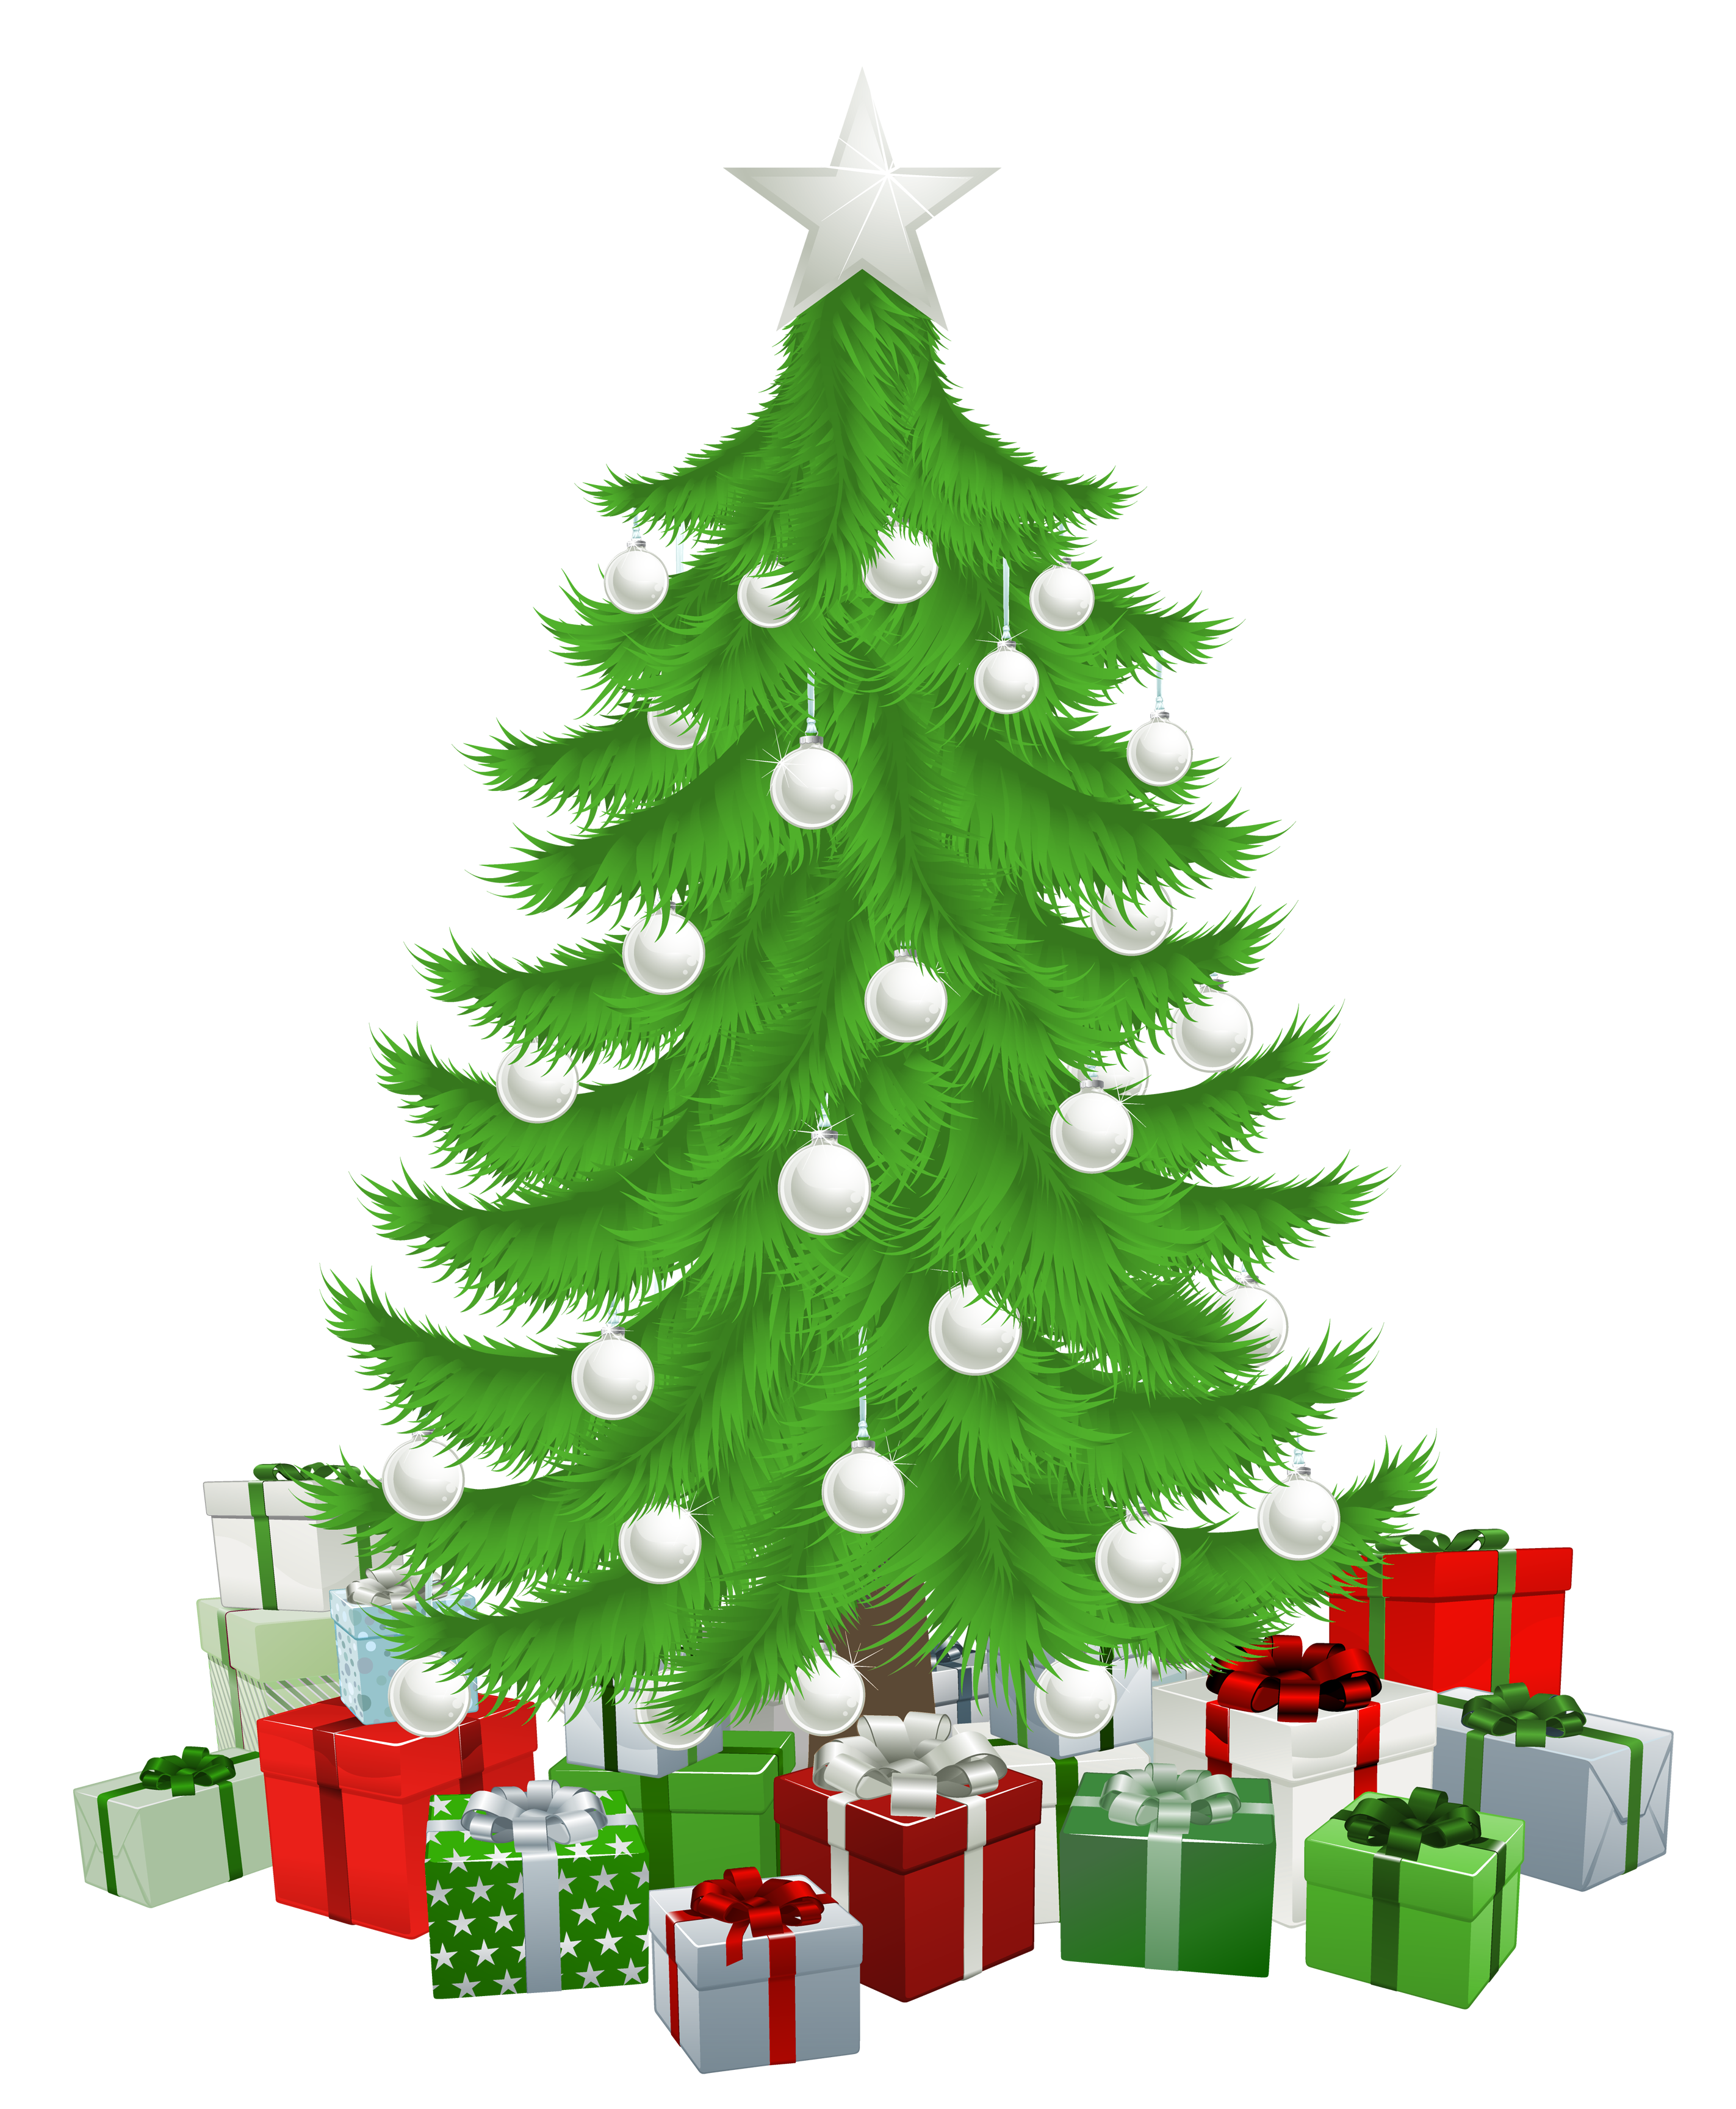 Transparent Christmas Tree with Presents Clipart Picture.